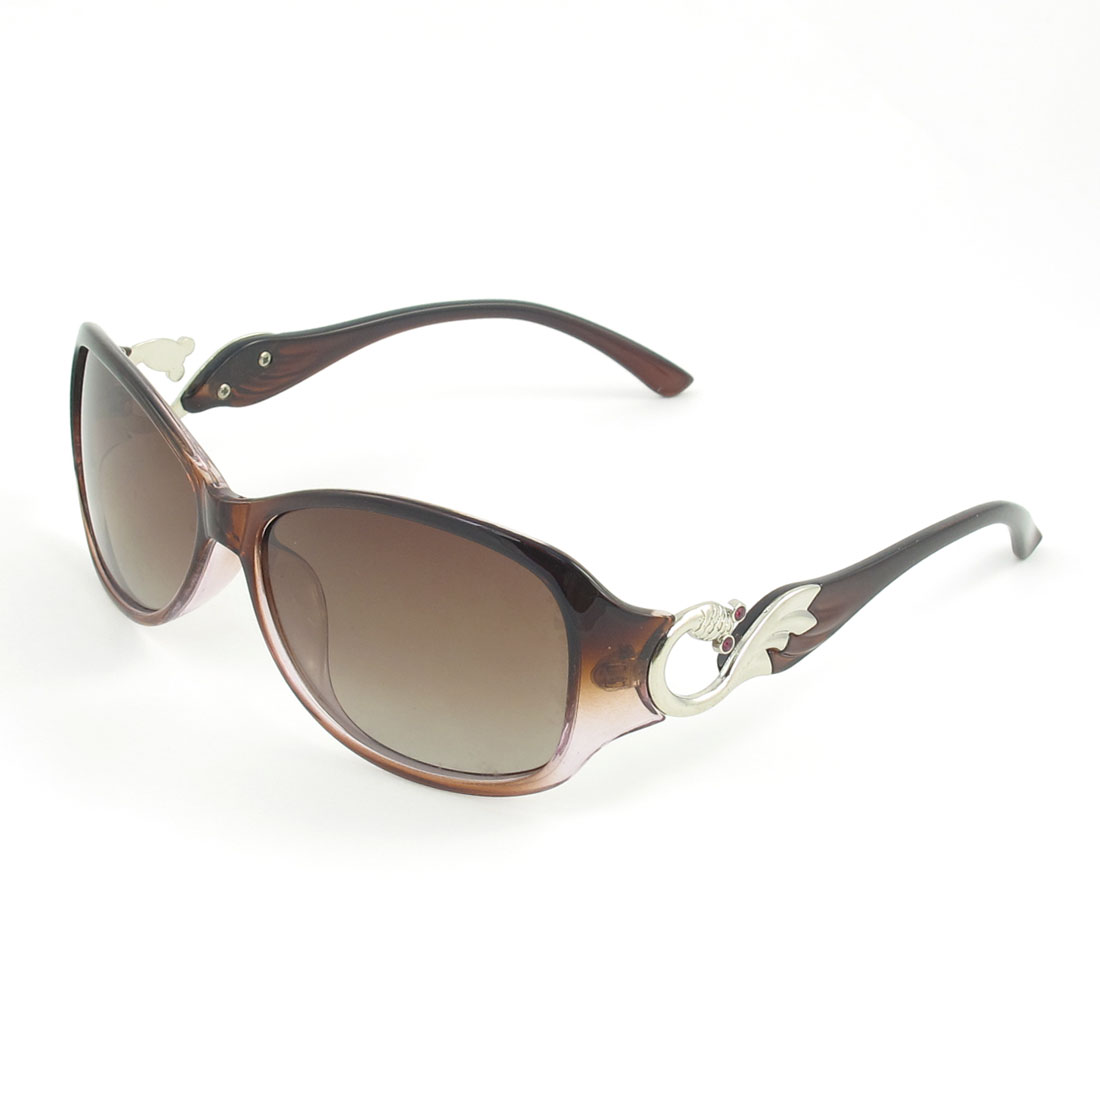 Ladies Brown Rimmed Single Bridge Oval Shape Tinted Lens Polarized Sunglasses